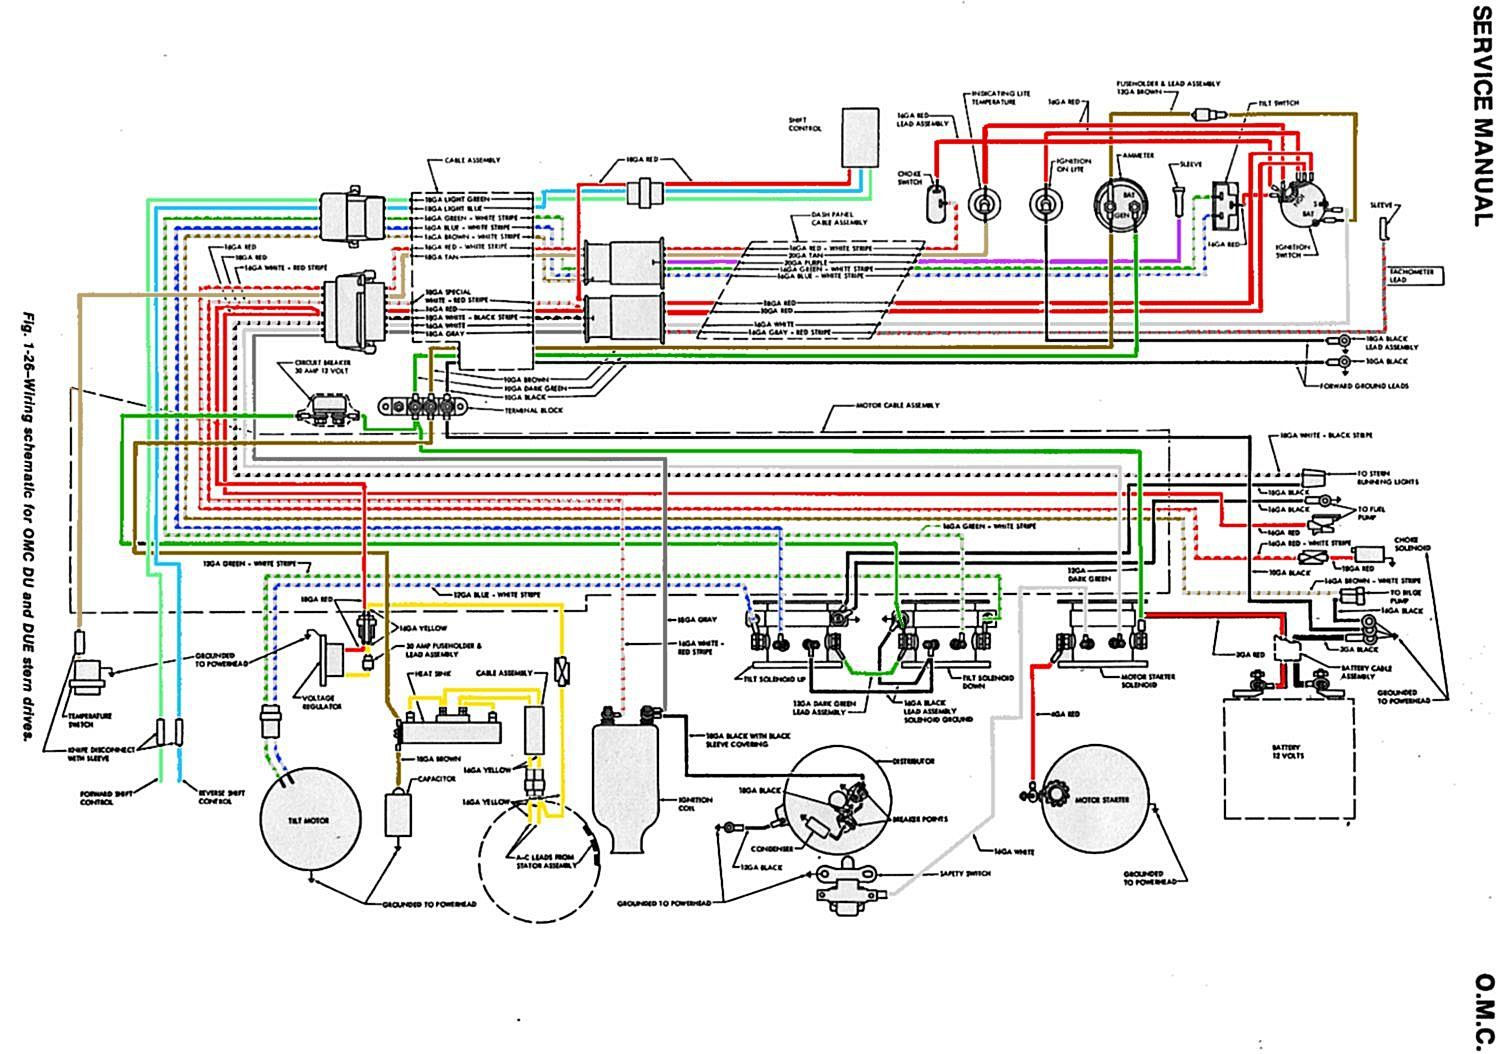 Typical Utility Trailer Wiring Diagram : Triton boat trailer wiring diagram efcaviation